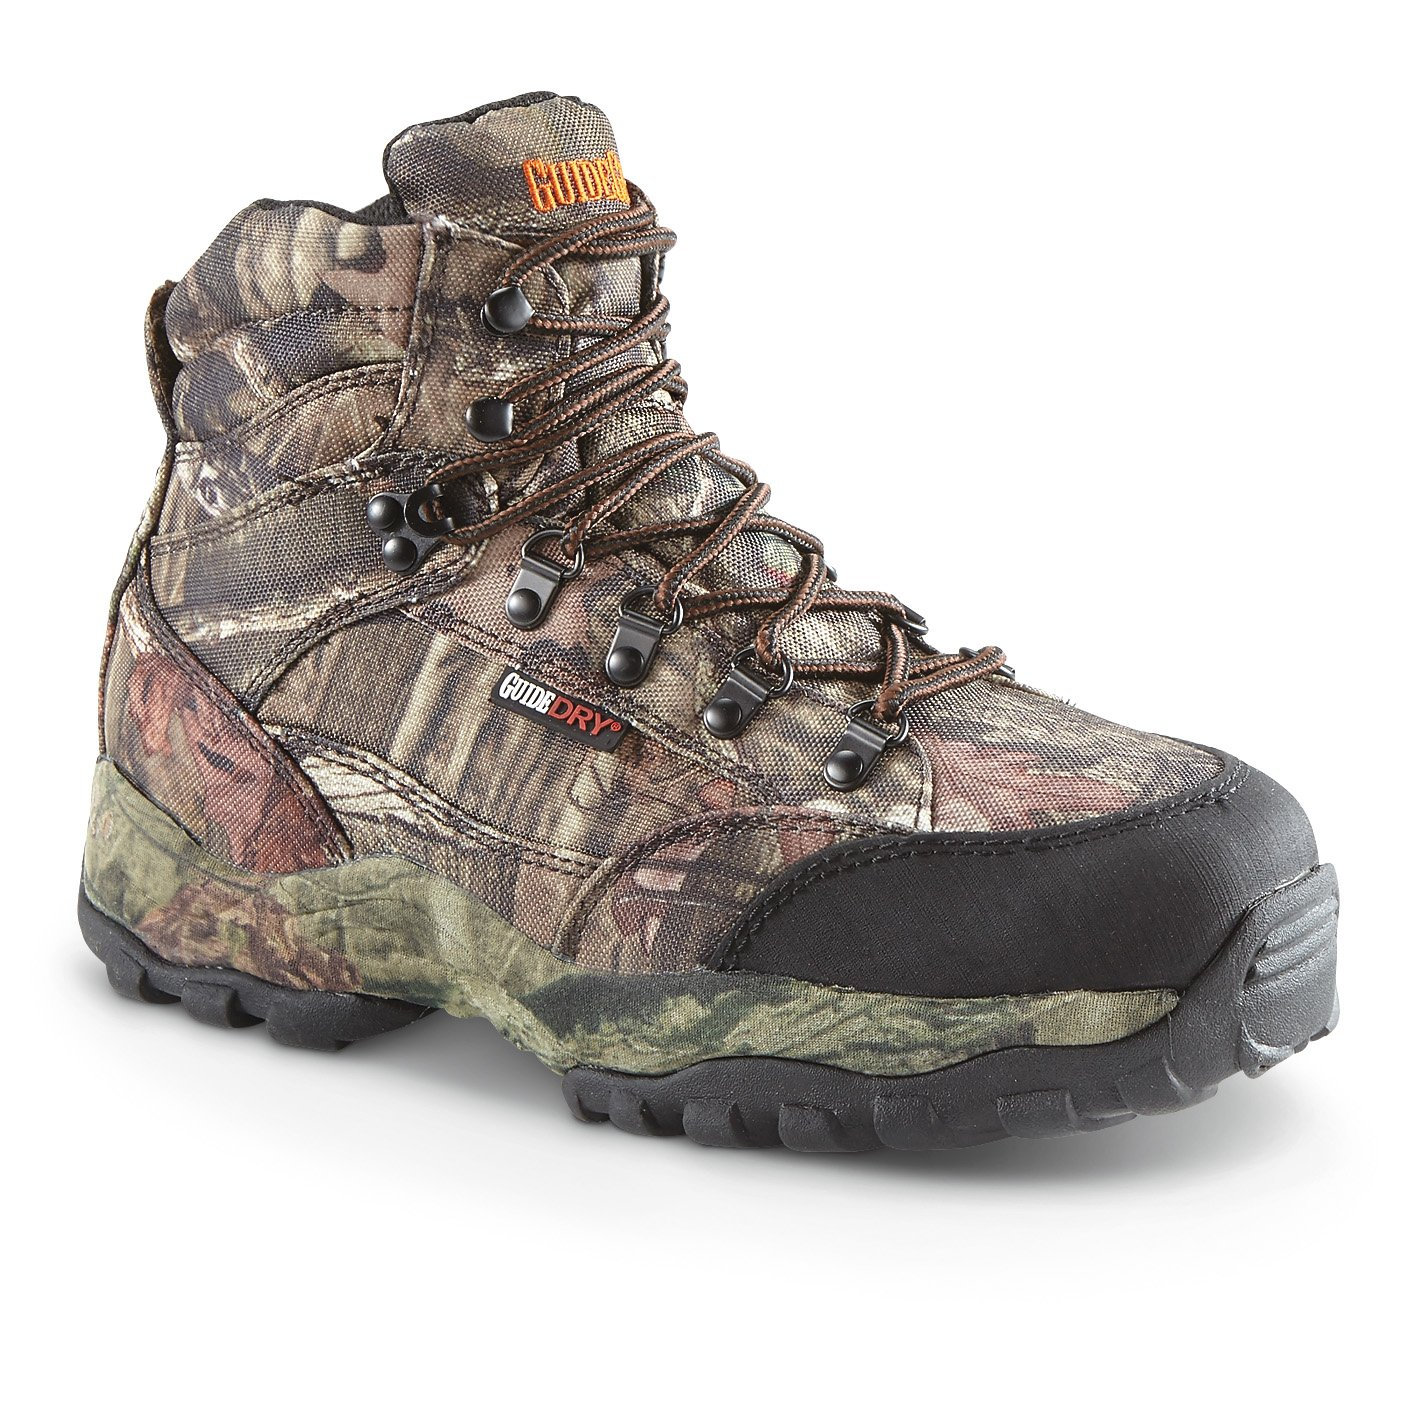 142cc1fd474 Guide Gear Men's Guidelight II 6'' Insulated Waterproof Hunting Boots